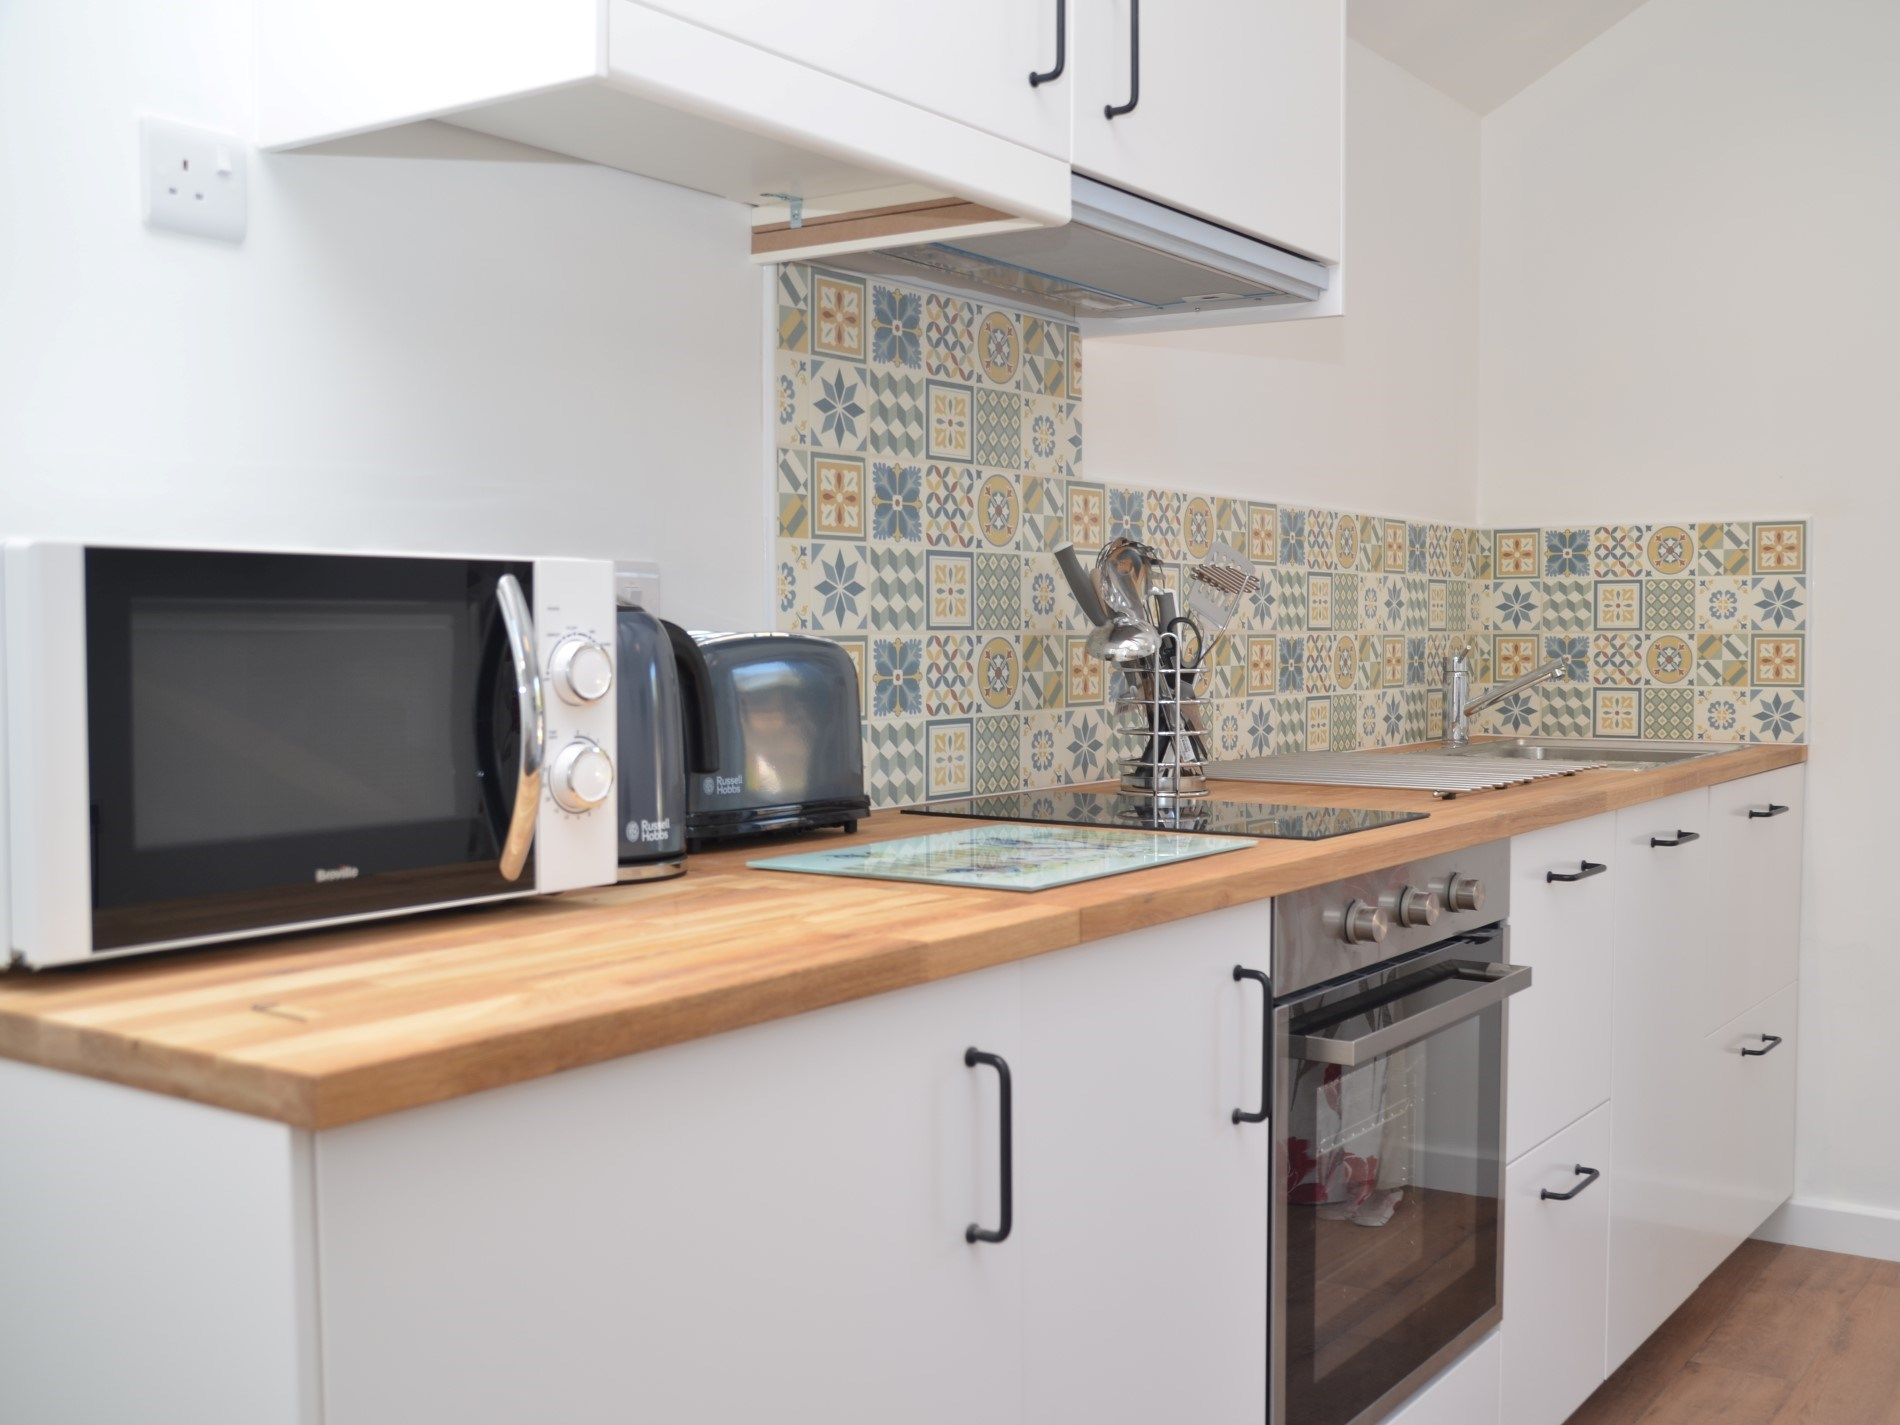 A well-equipped kitchen, great for cooking lazy breakfasts